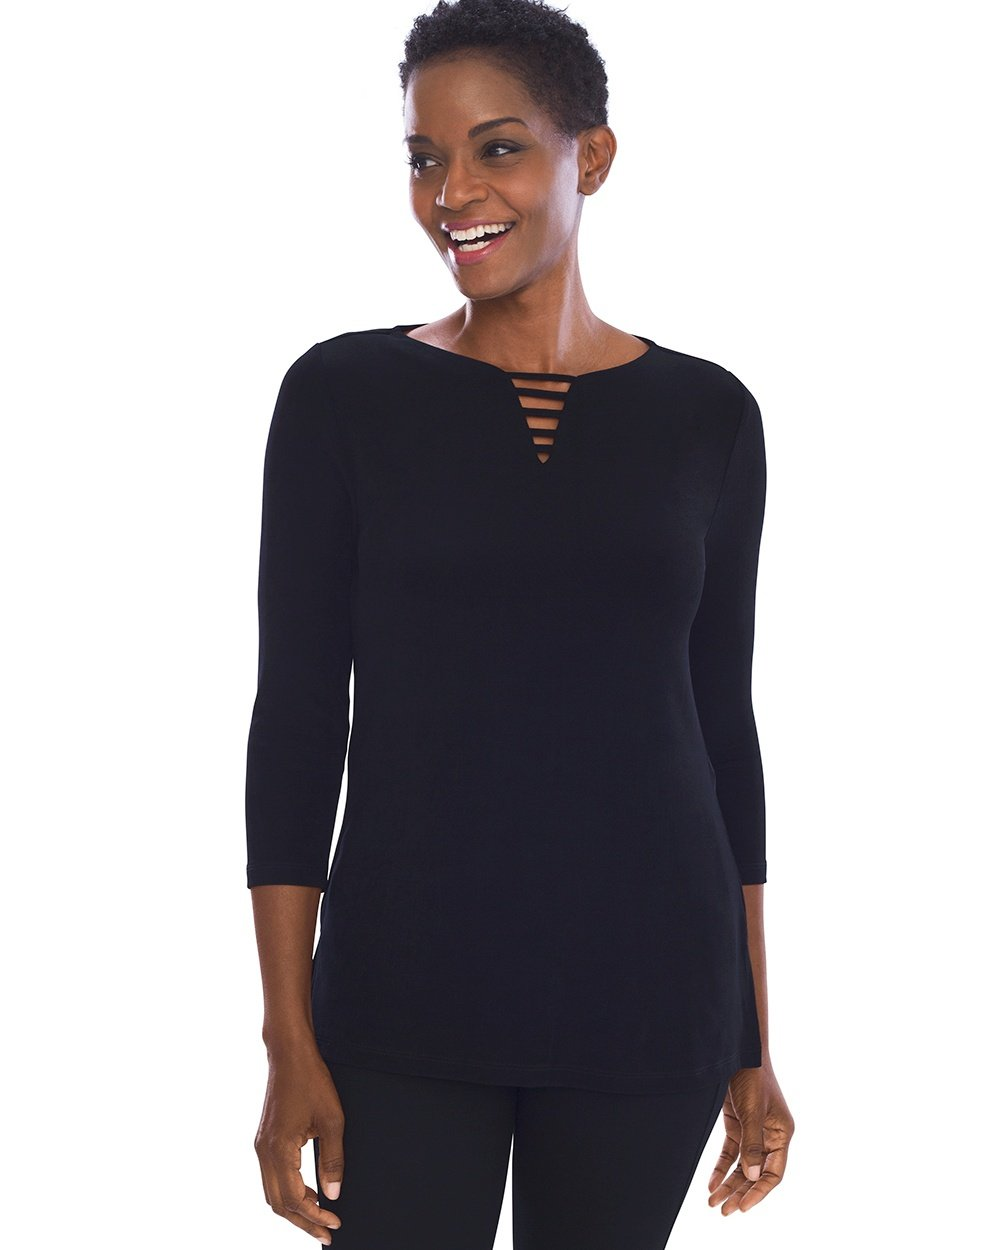 Chico's Women's Travelers Classic Neck-Detail Top Size 16/18 XL (3) Black